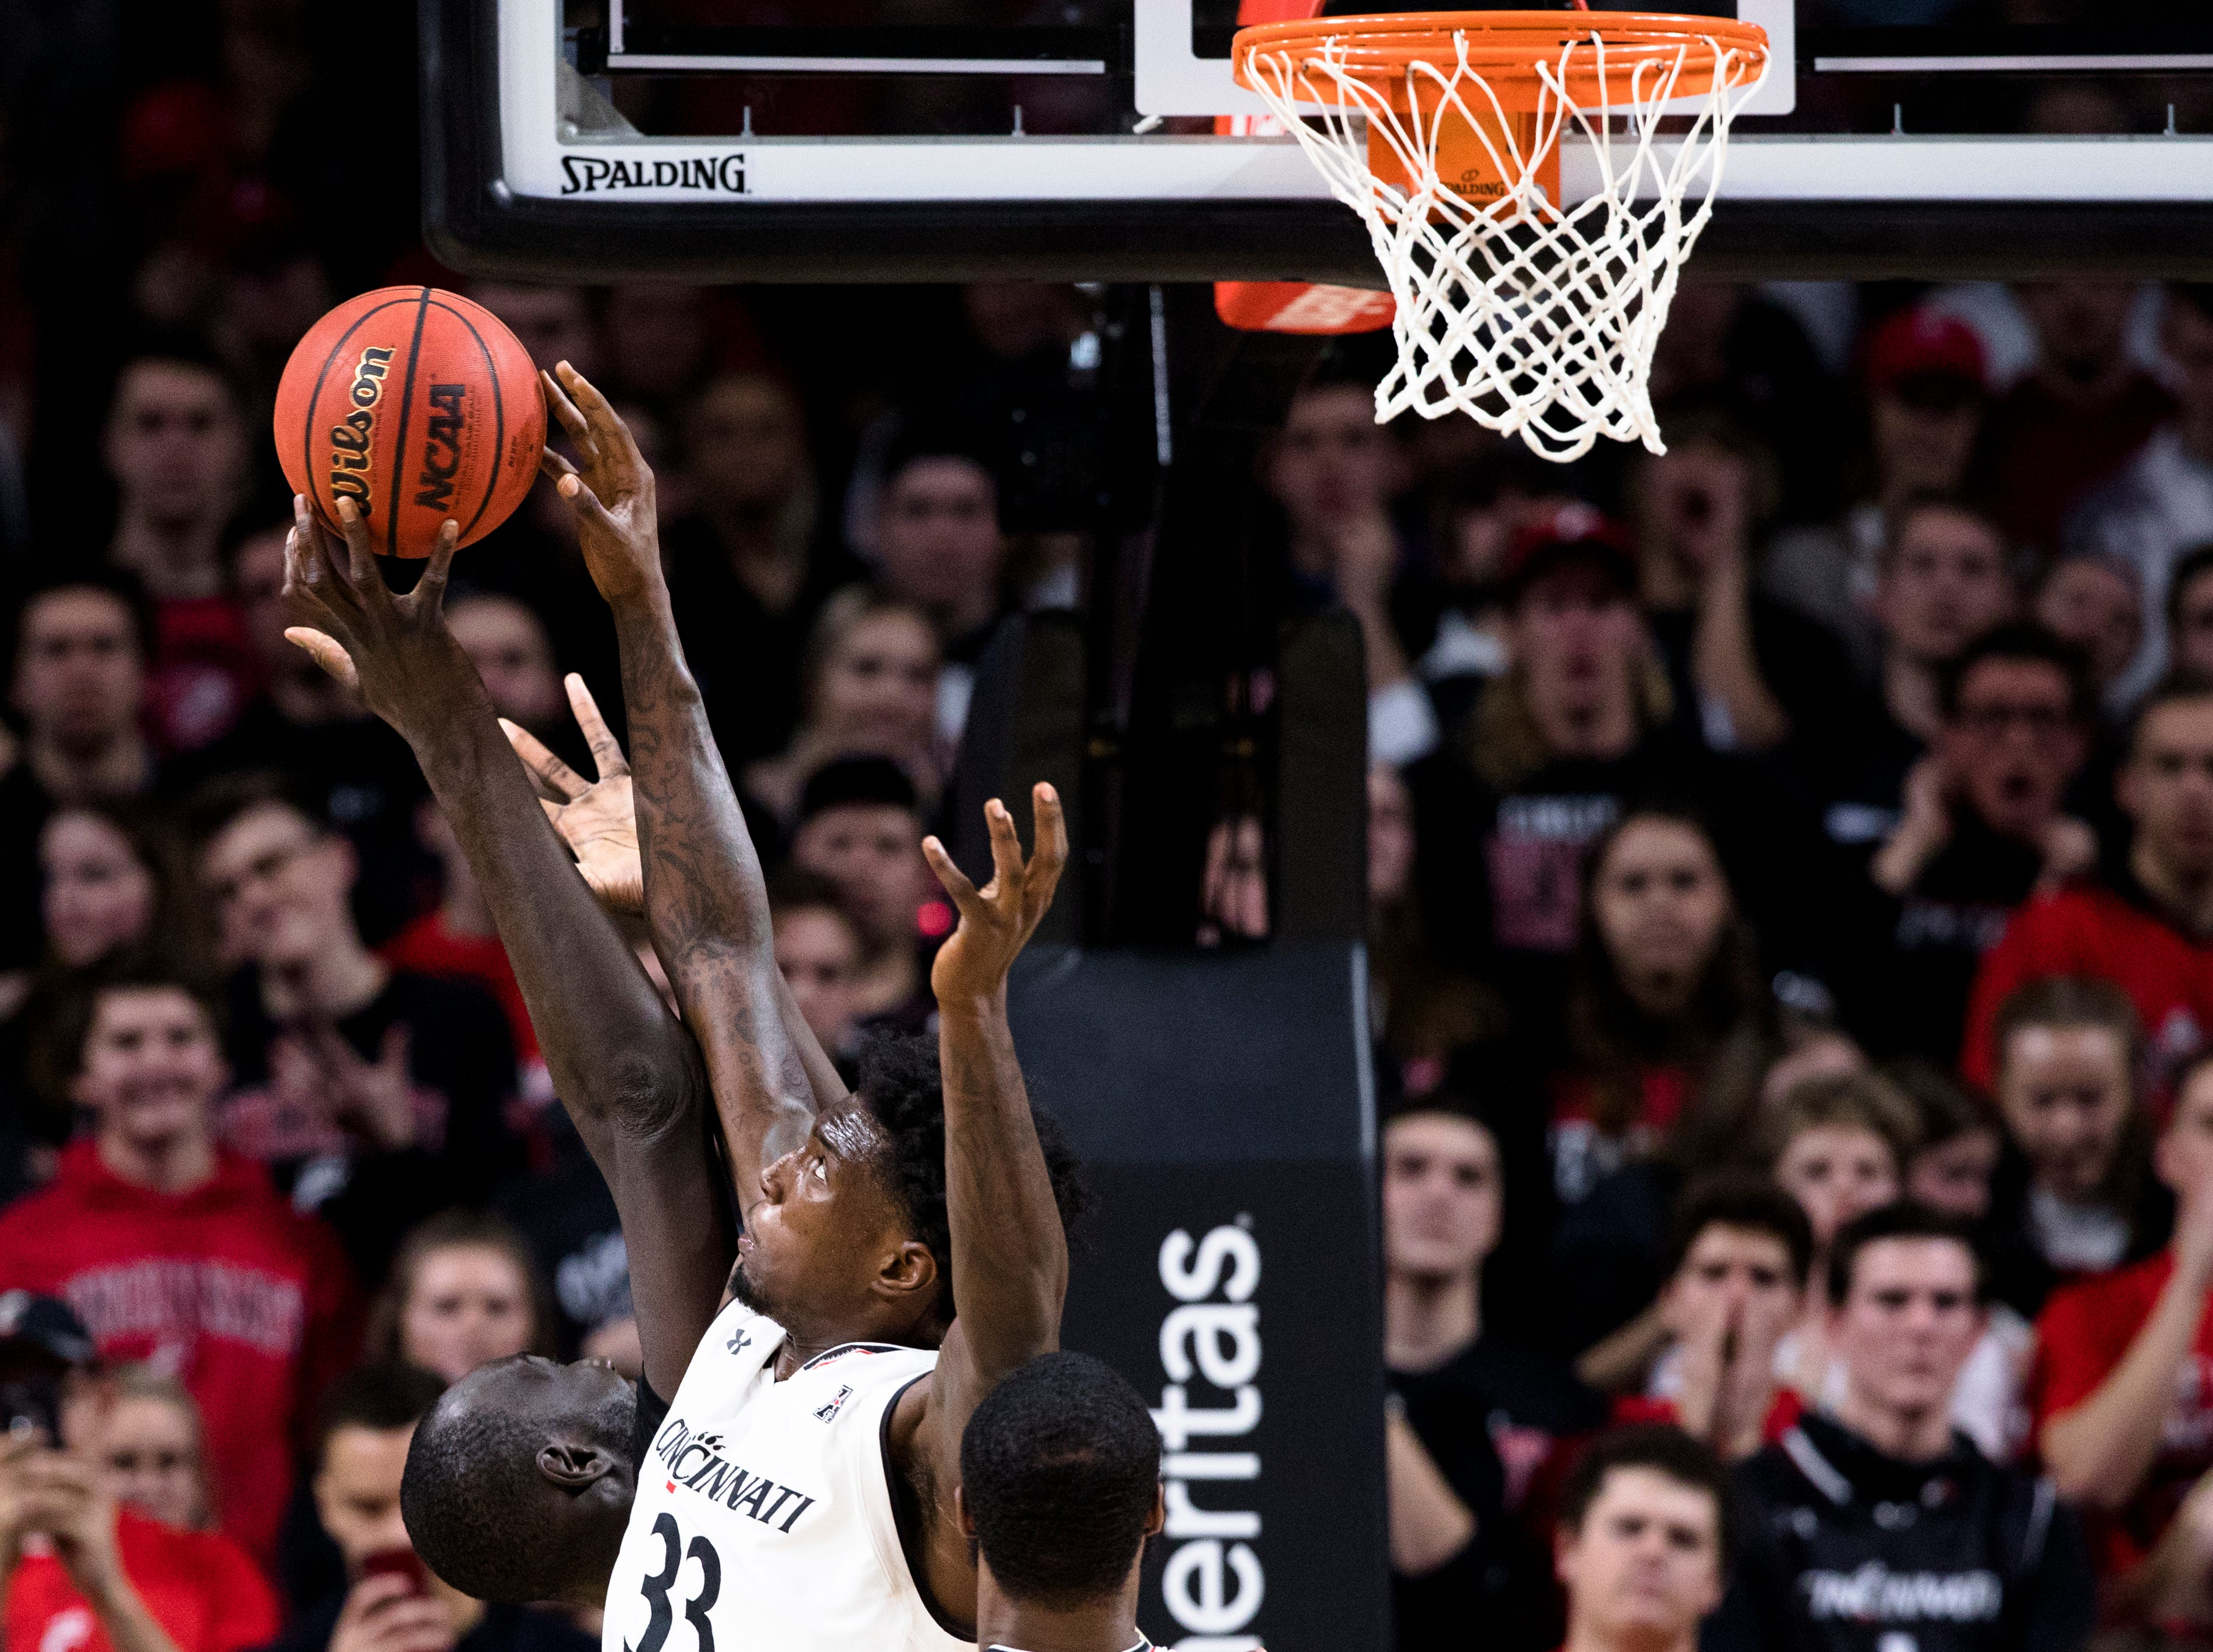 Cincinnati Bearcats center Nysier Brooks (33) fights for a rebound with UCF Knights center Tacko Fall (24) in the first half of the NCAA men's basketball game between Cincinnati Bearcats and UCF Knights on Thursday, Feb. 21, 2019, at Fifth Third Arena in Cincinnati.